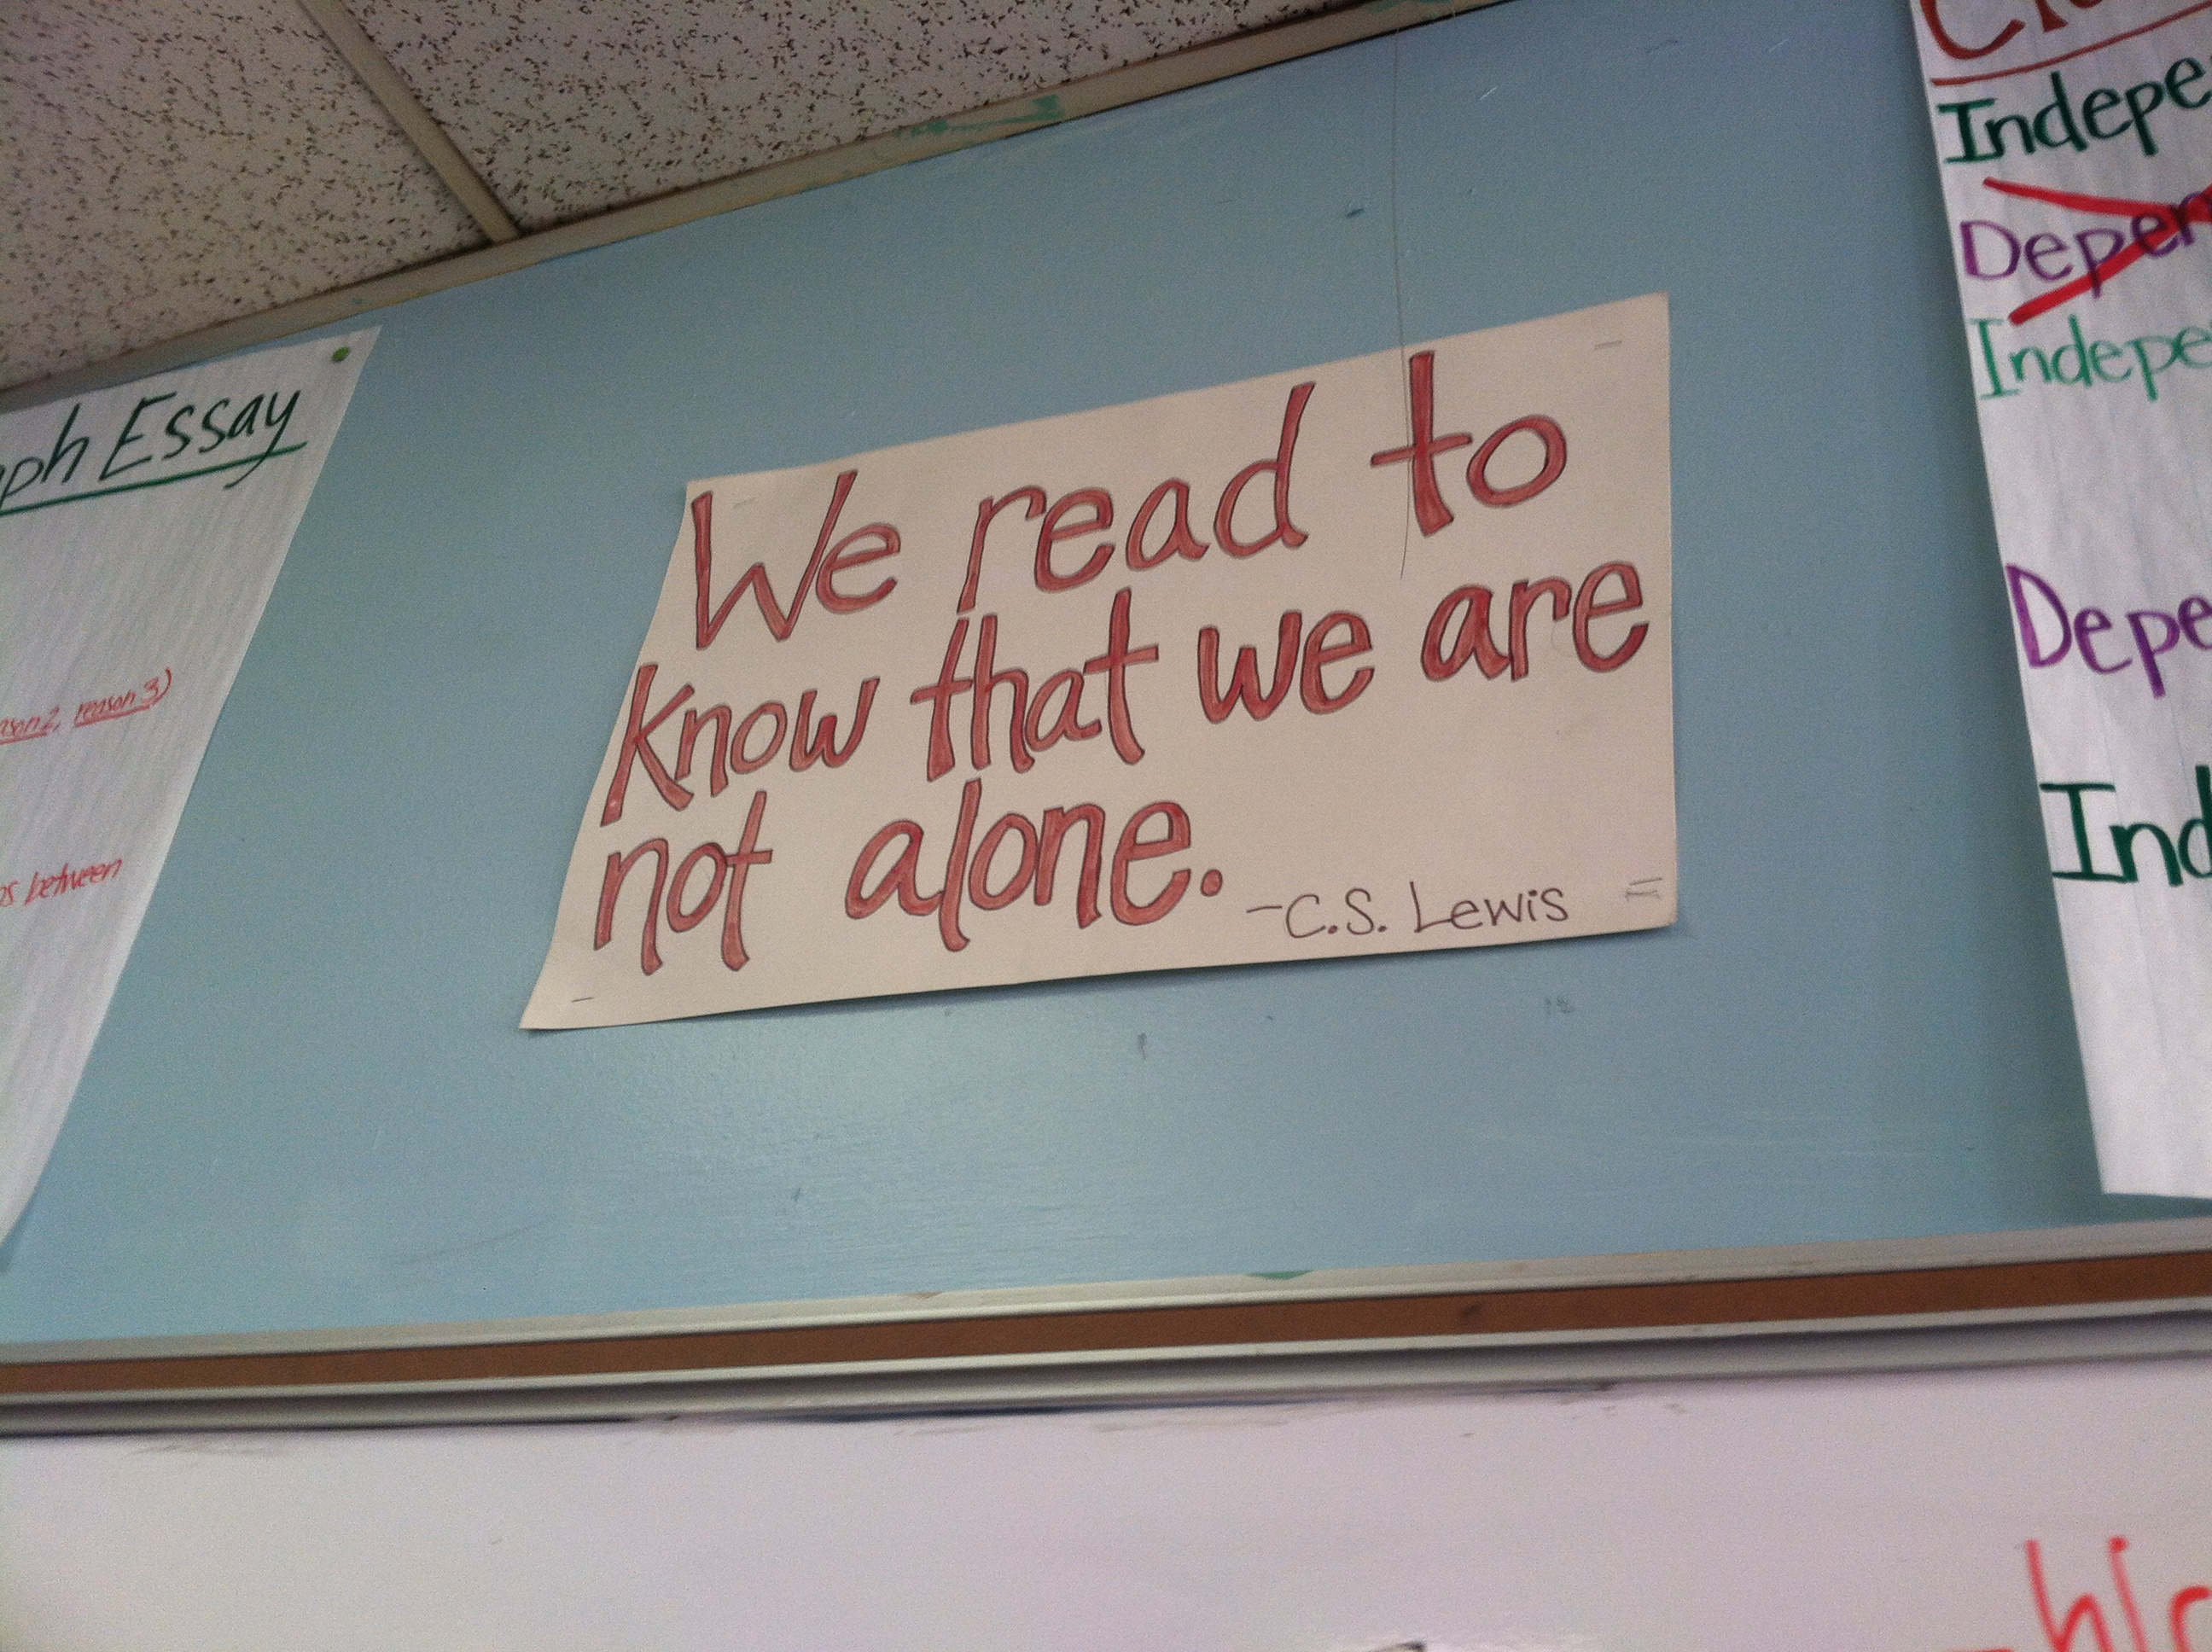 """We read to know that we are not alone."" — C.S. Lewis"